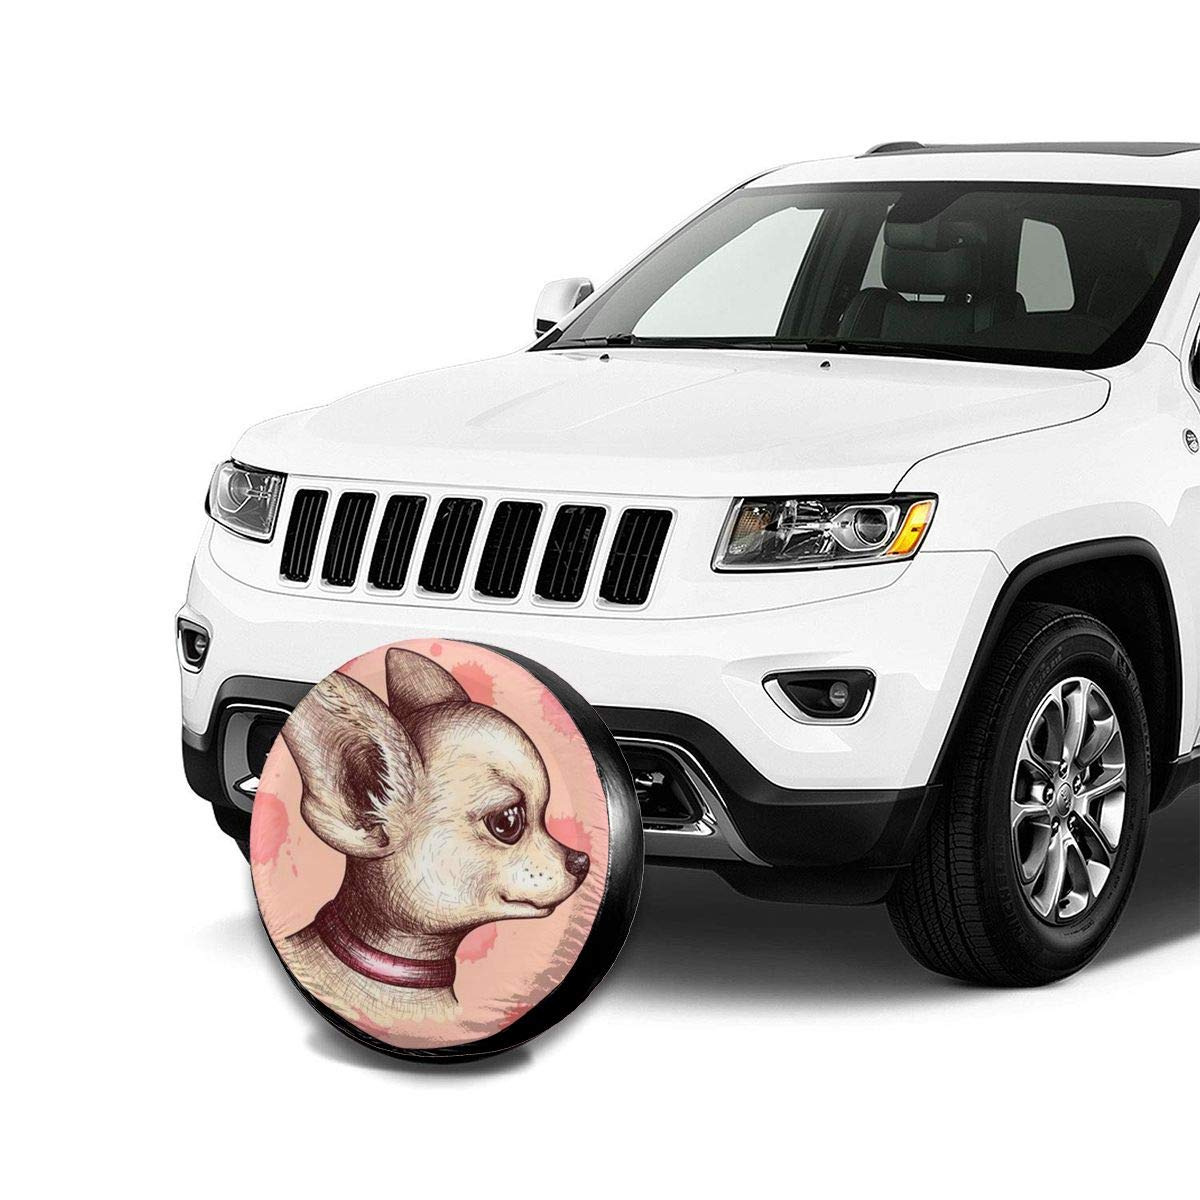 RV FPSMOUPD Tire Covers Pink Cute Dog Spare Tire Cover Waterproof Dust-Proof Universal Spare Wheel Tire Cover Fit for Jeep,Trailer SUV and Many Vehicle